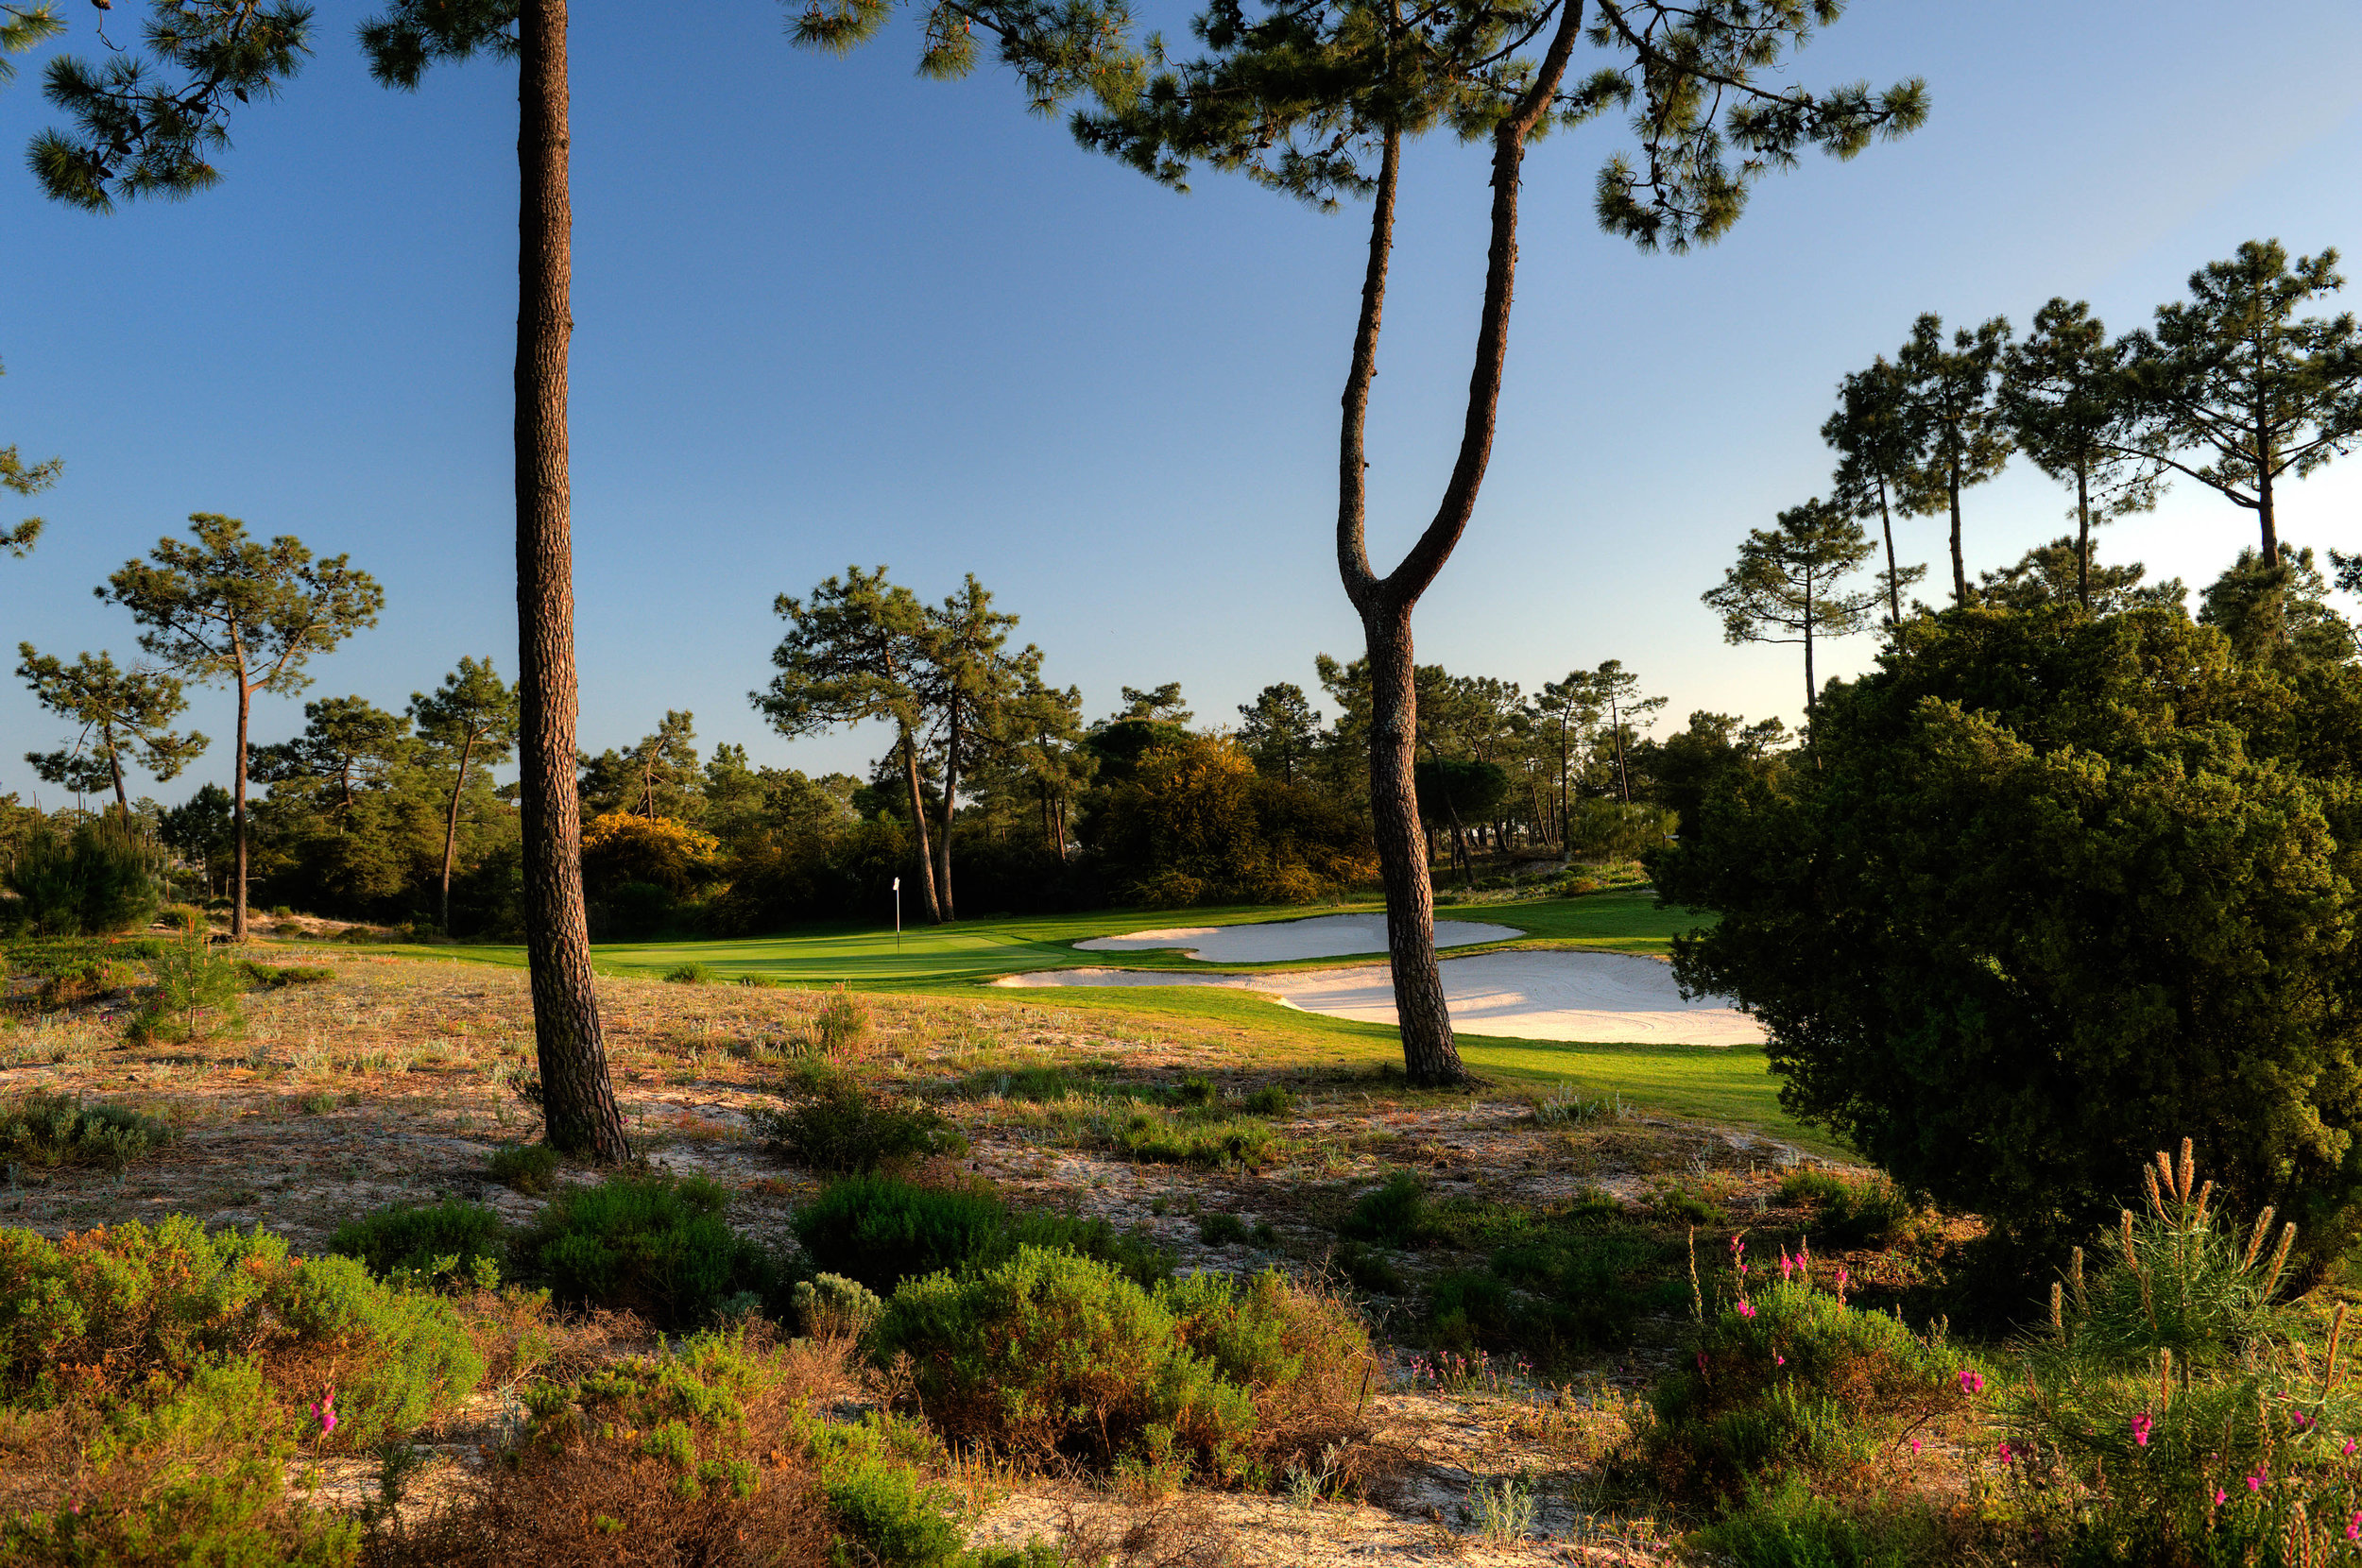 Tróia Golf Links is an oasis of delight in one of the most naturally beautiful parts of Portugal